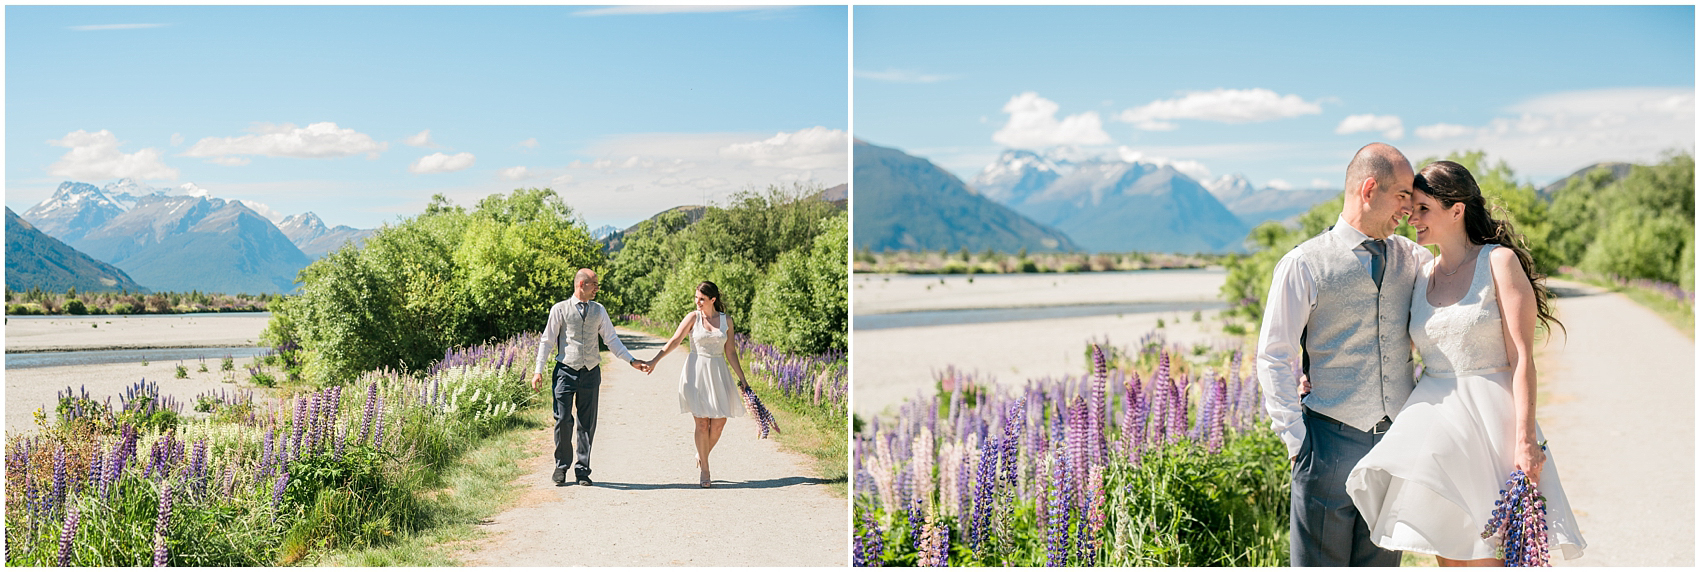 Queenstown New Zealand Wedding Photographer Bruna Fabricio Smetona Photo-0039.jpg